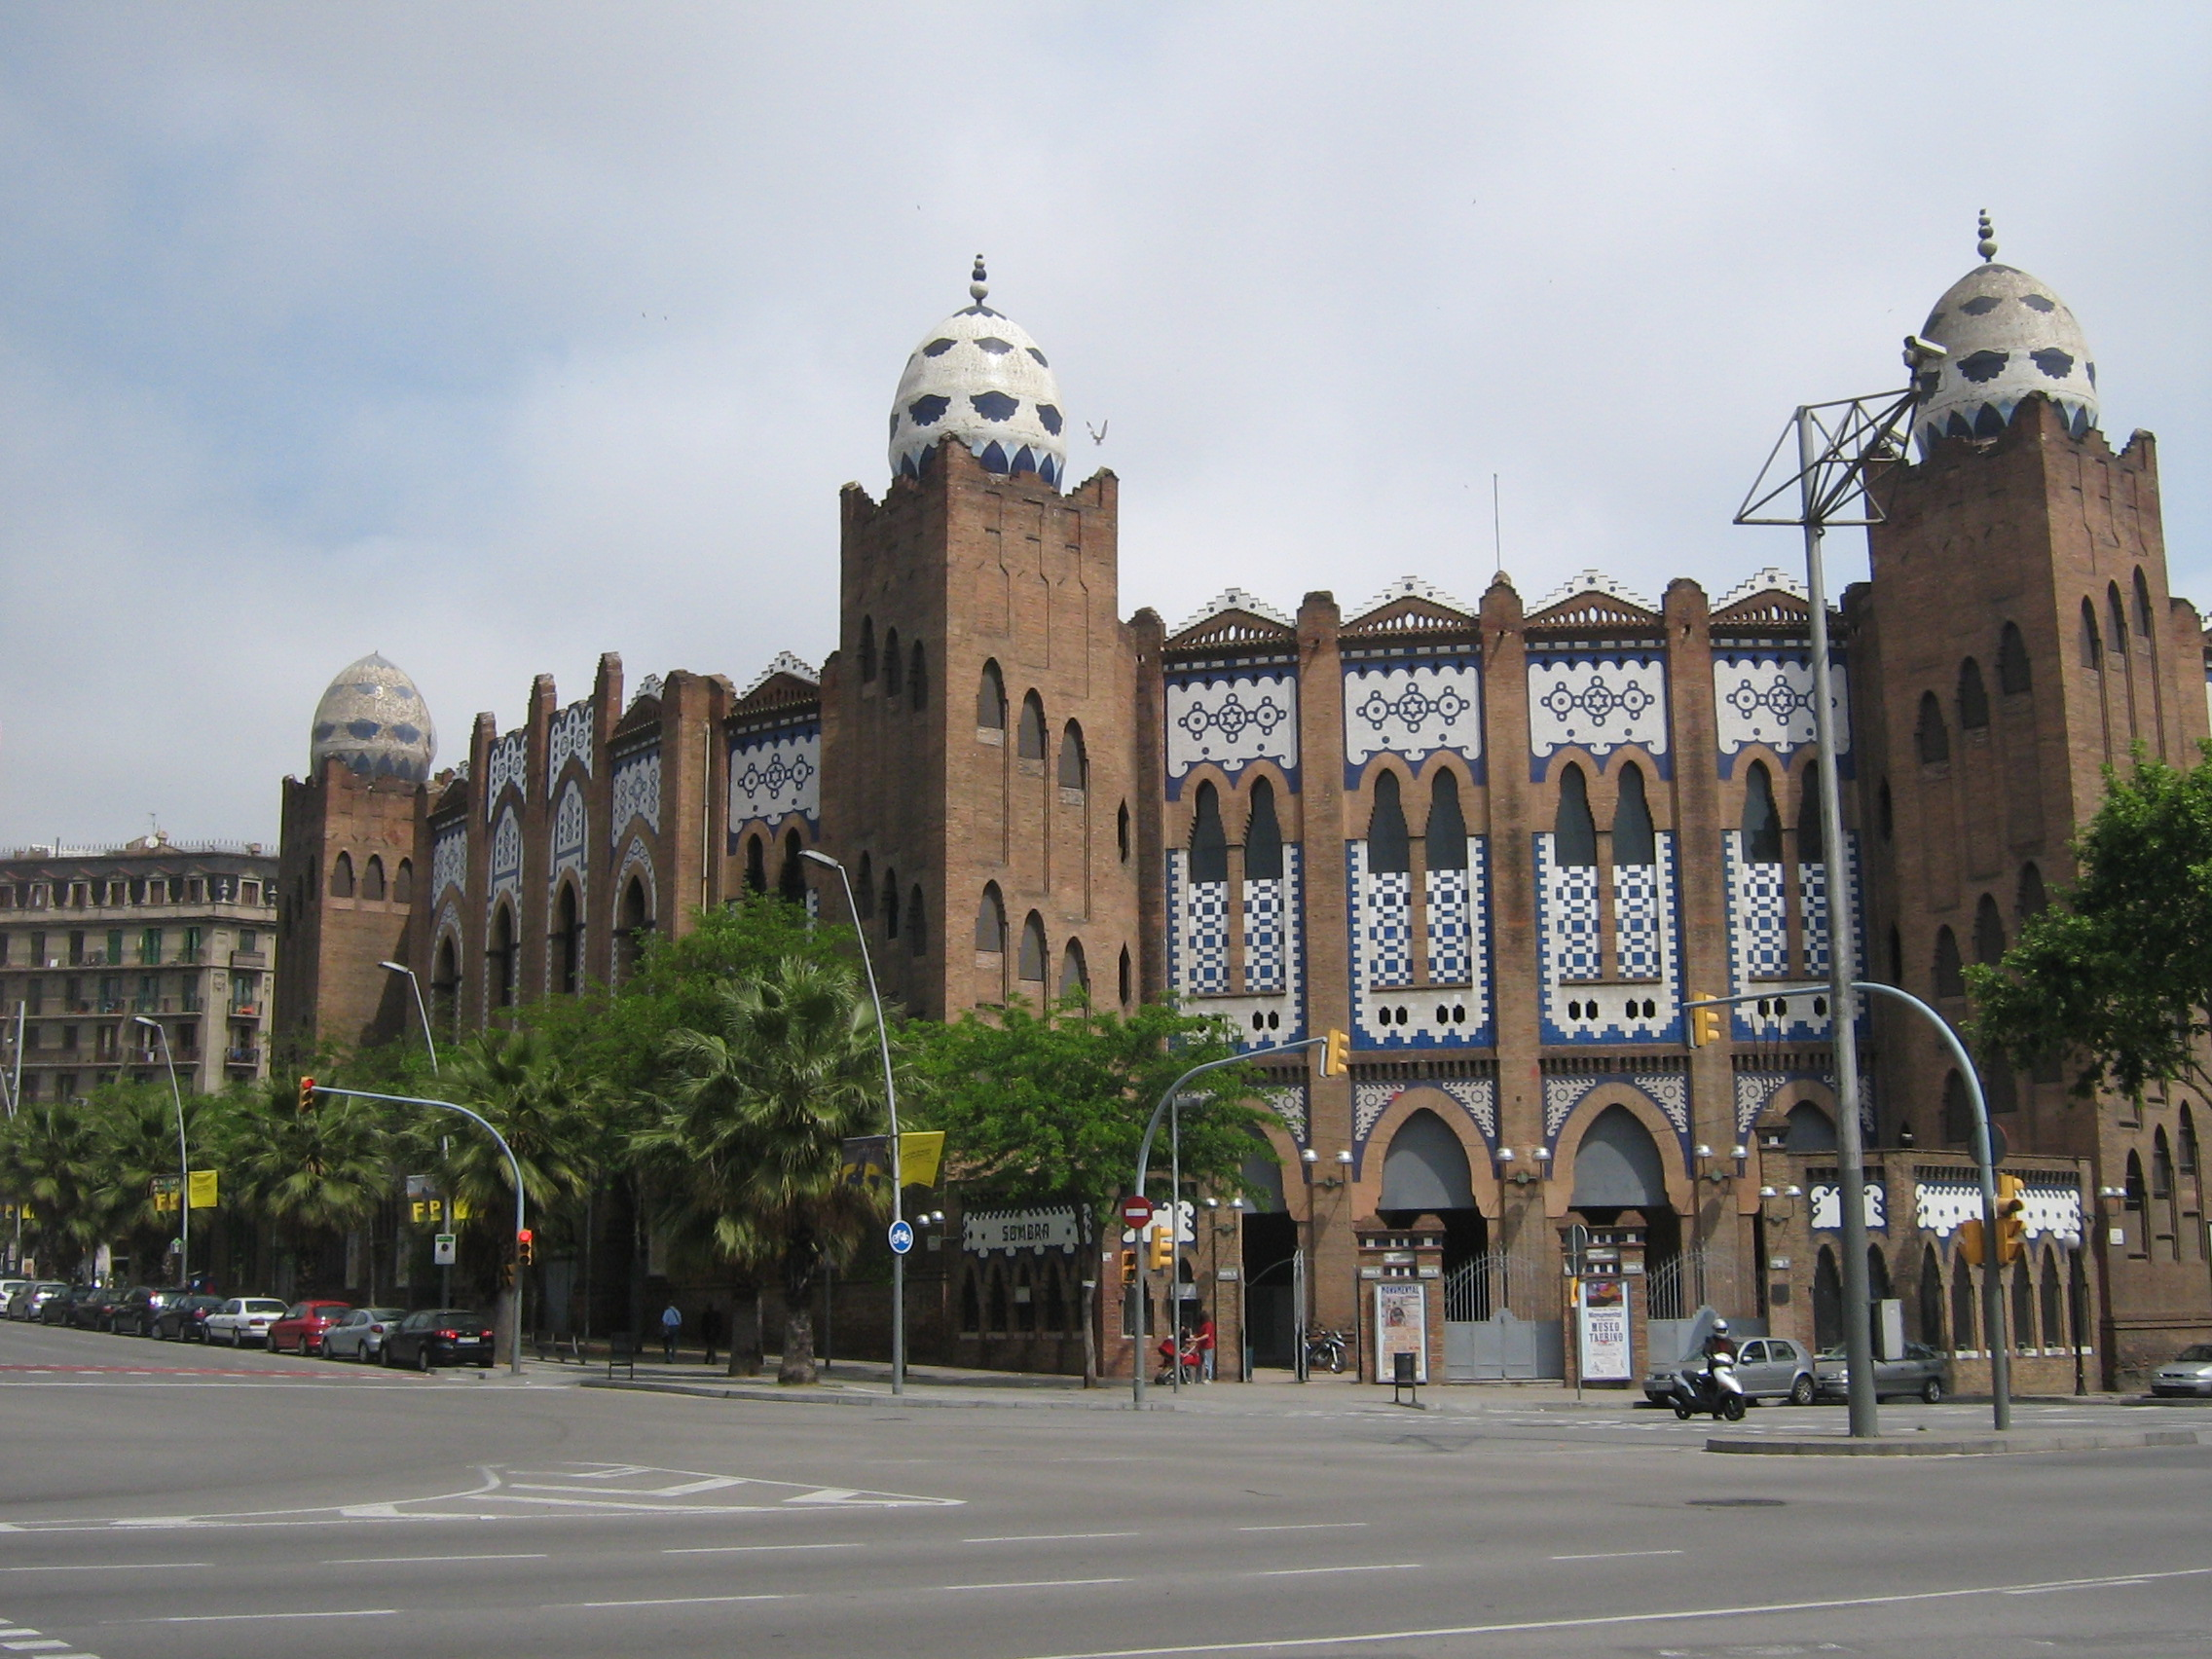 Barcelona Architecture, Spain, Plaza de Toros